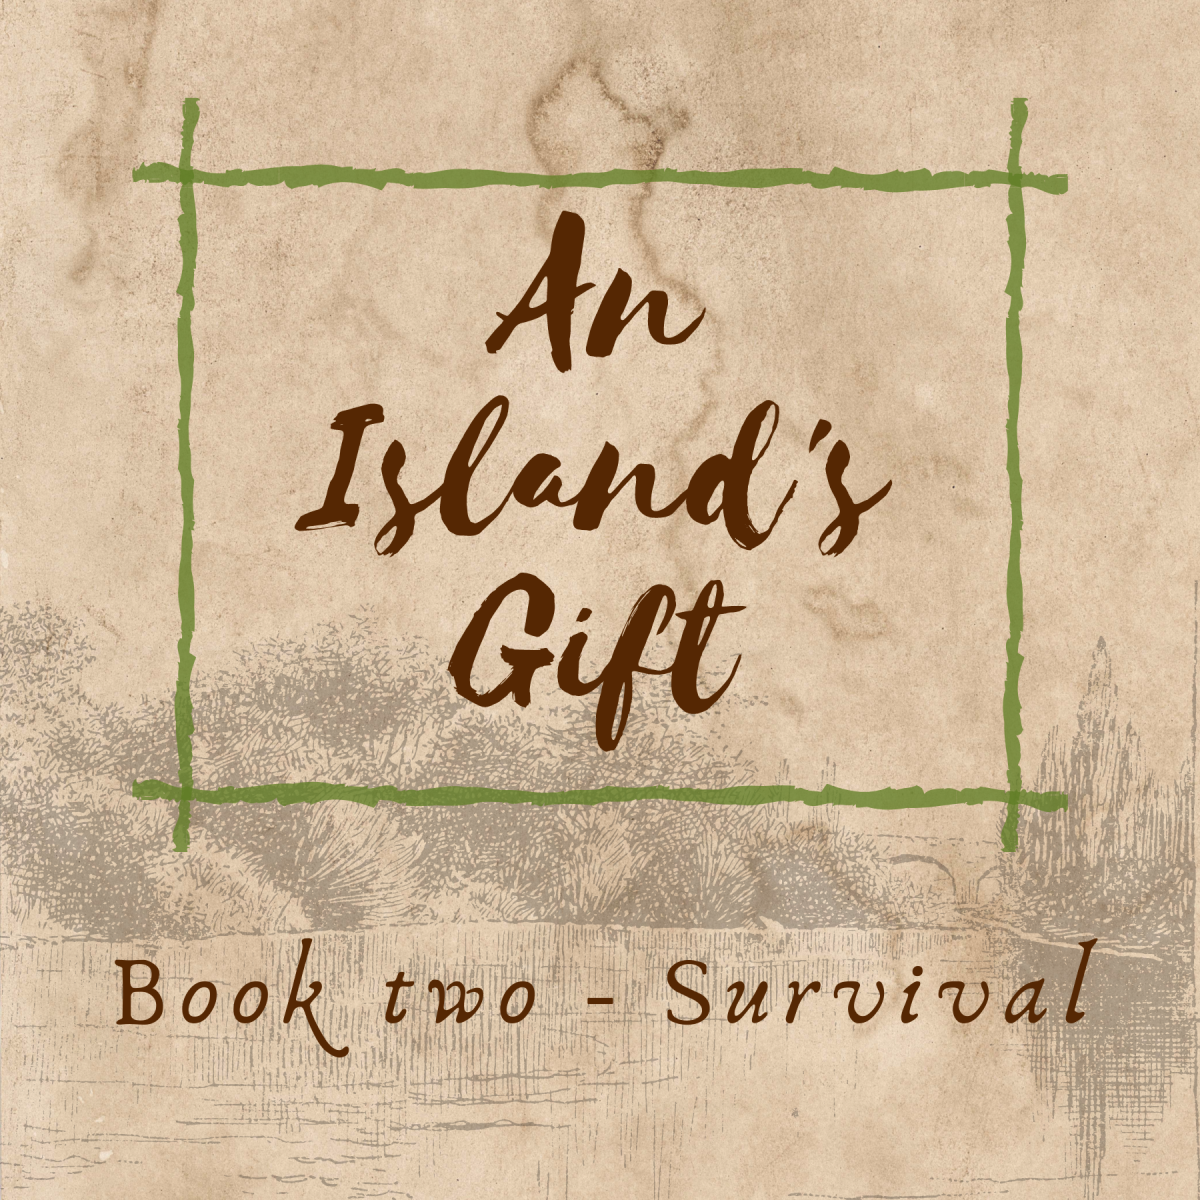 An Island's Gift book two: survival